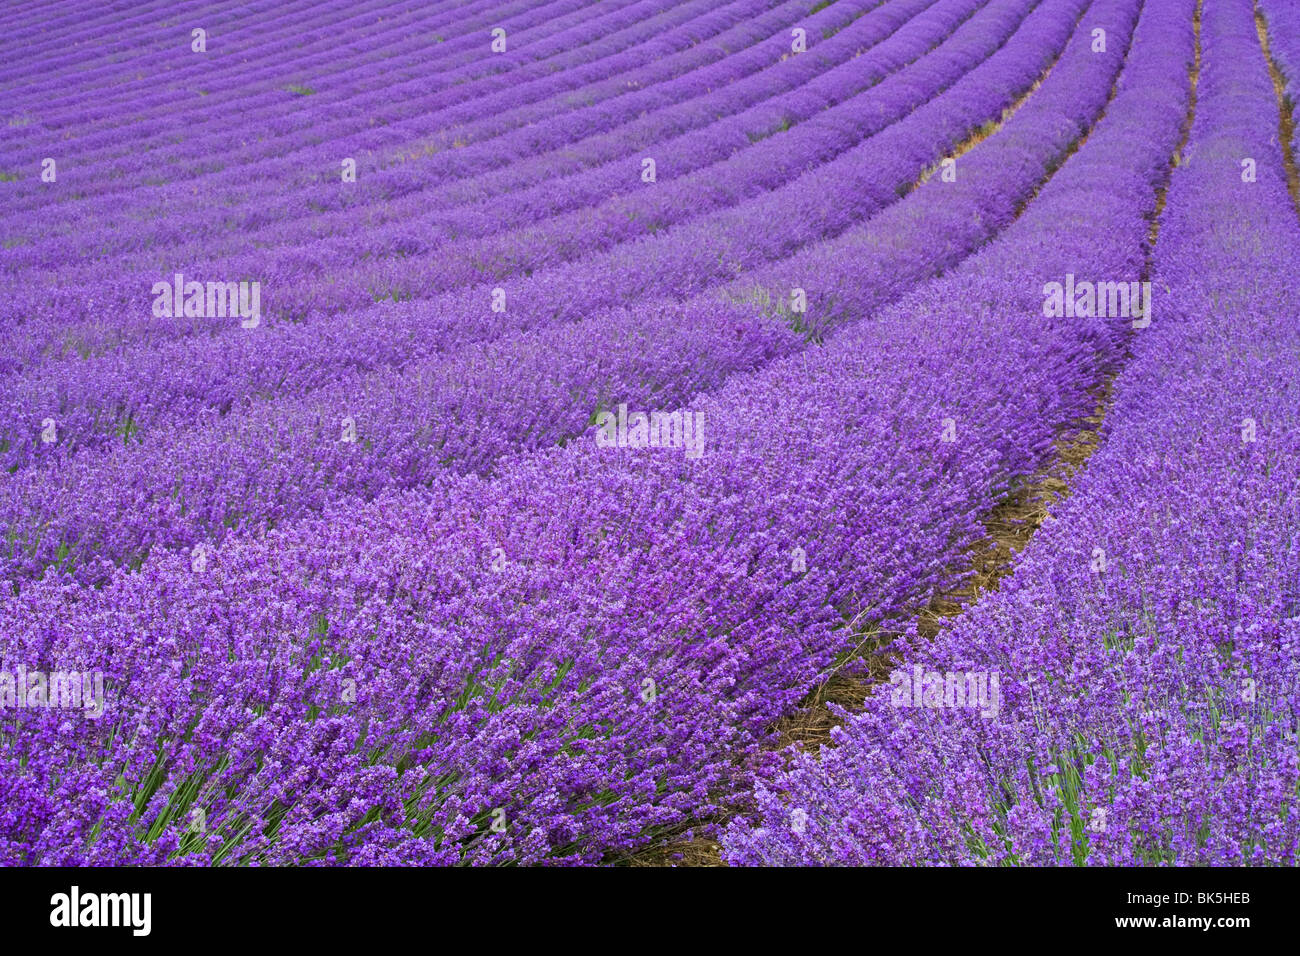 Lavender field near Chichester, West Sussex, England, United Kingdom, Europe - Stock Image